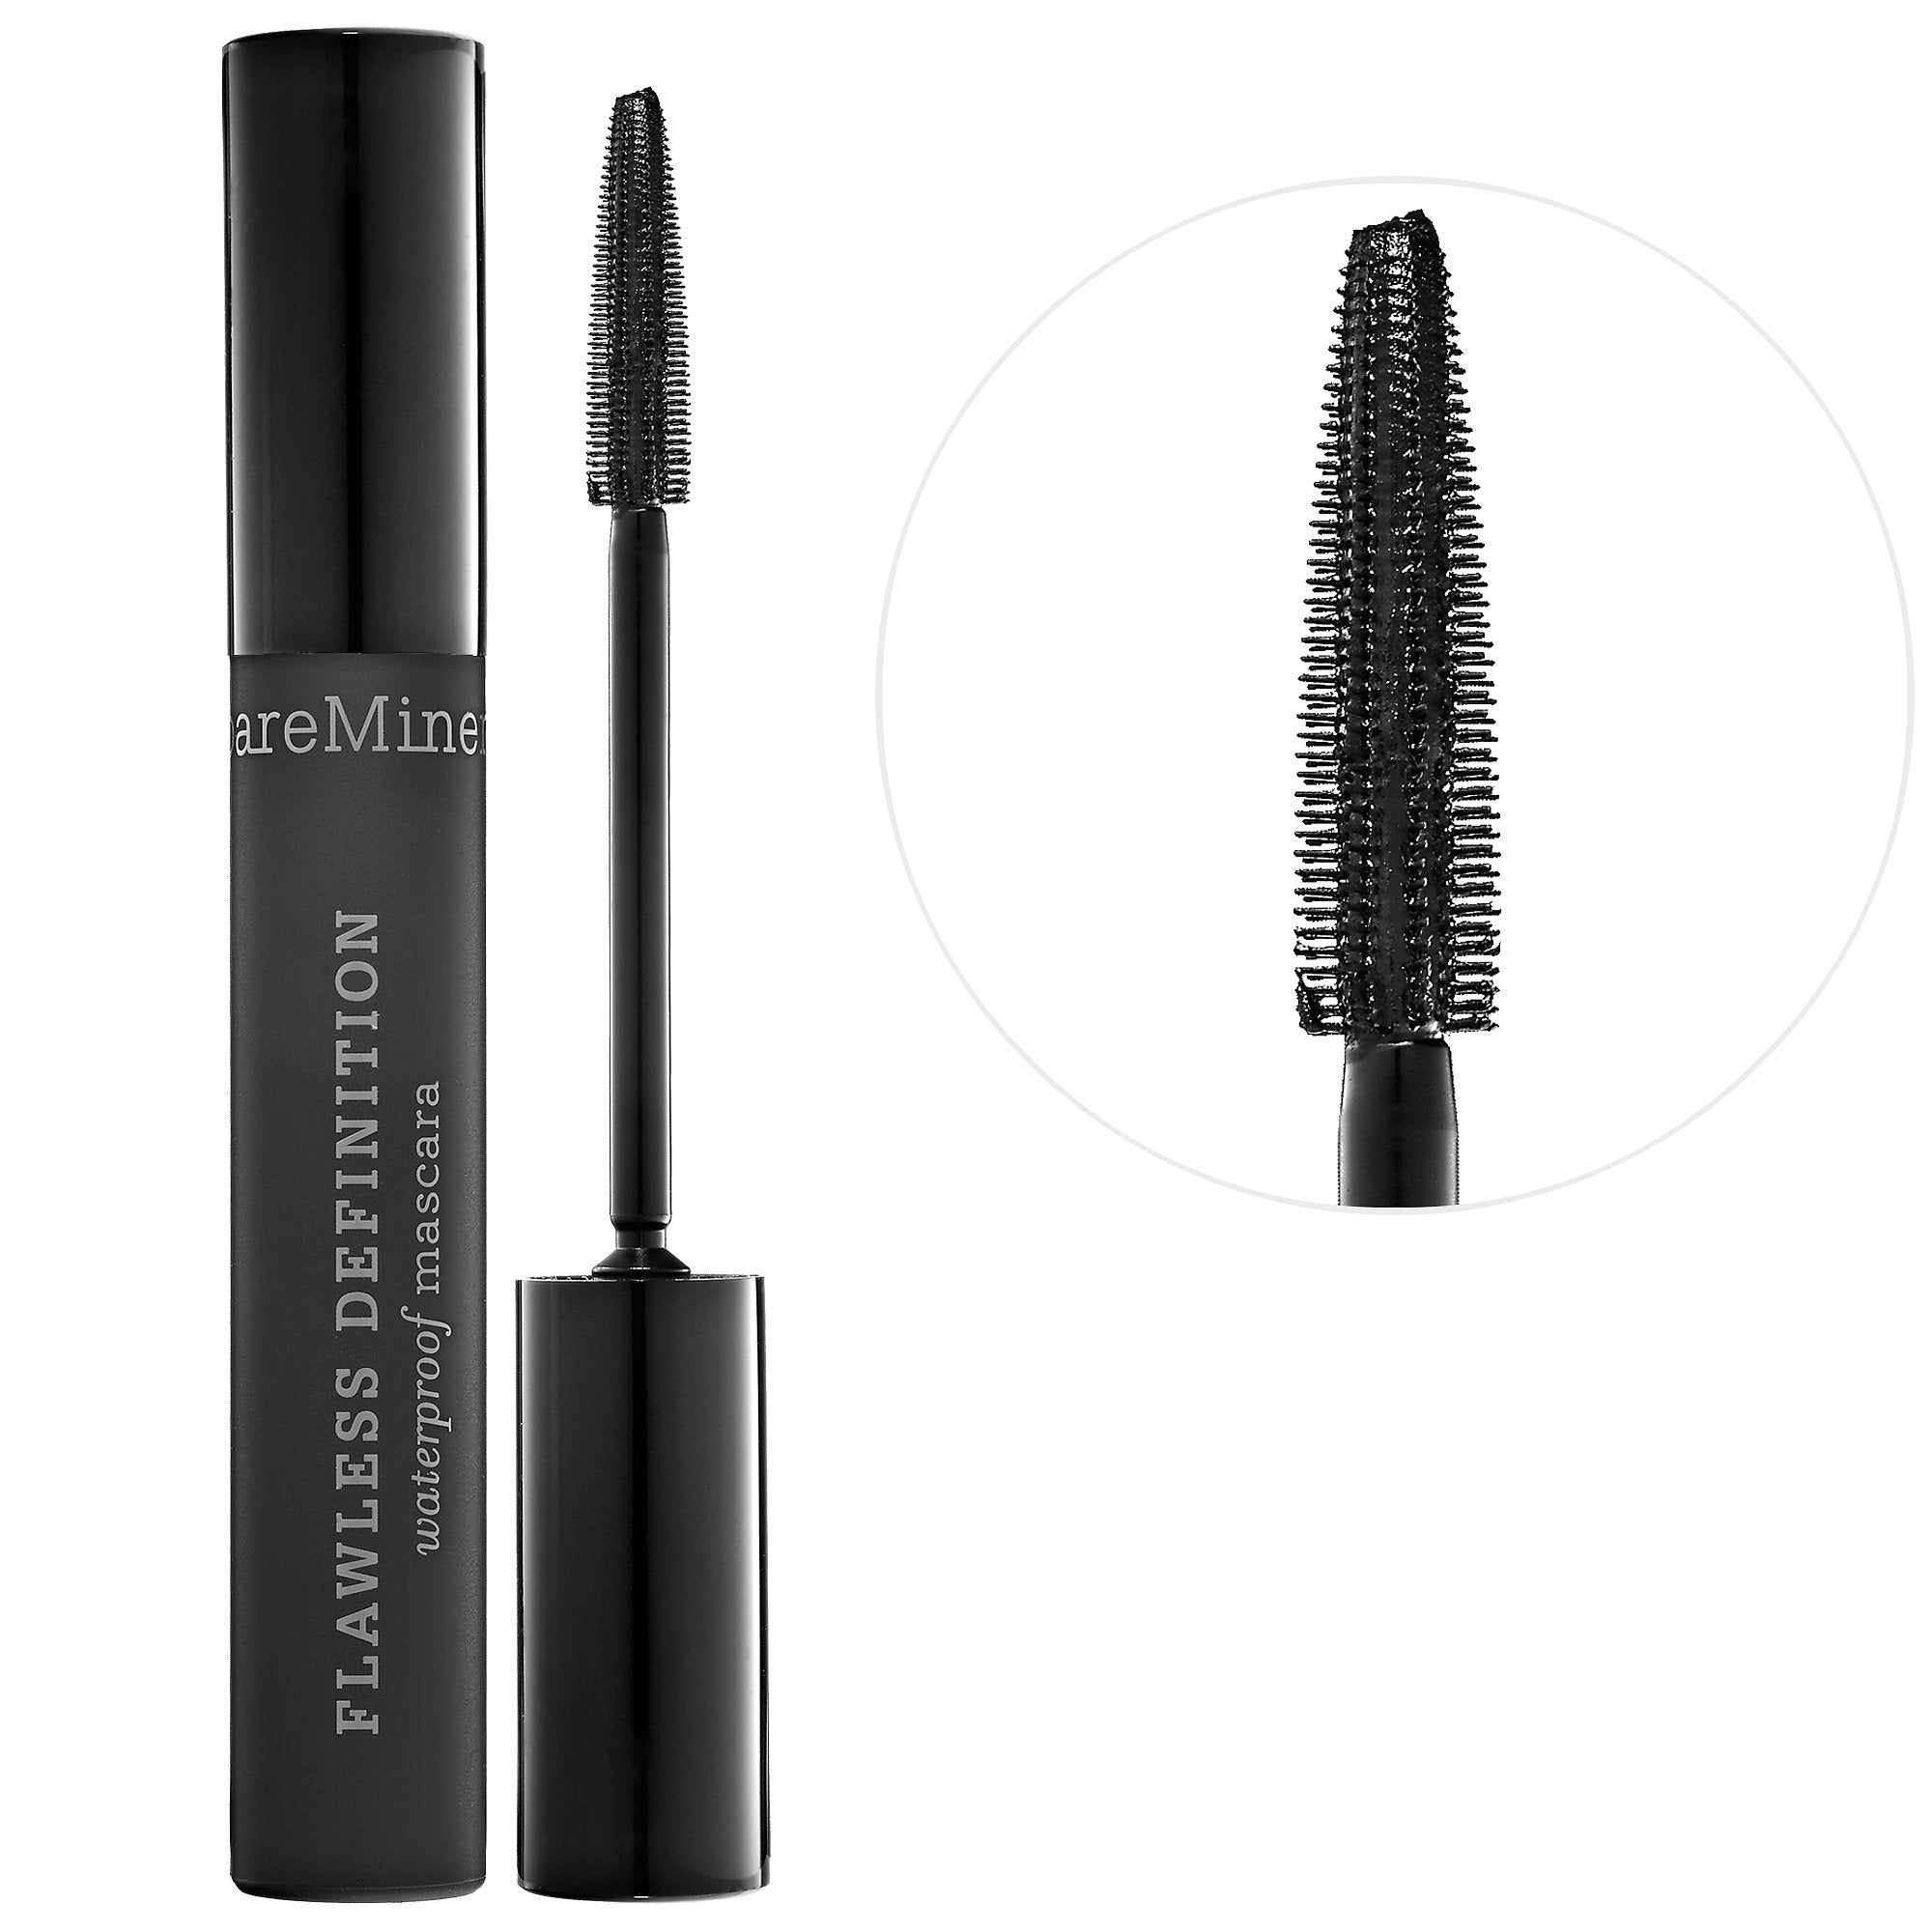 Bare Minerals Mascara Waterproof Flawless Definition Mascara